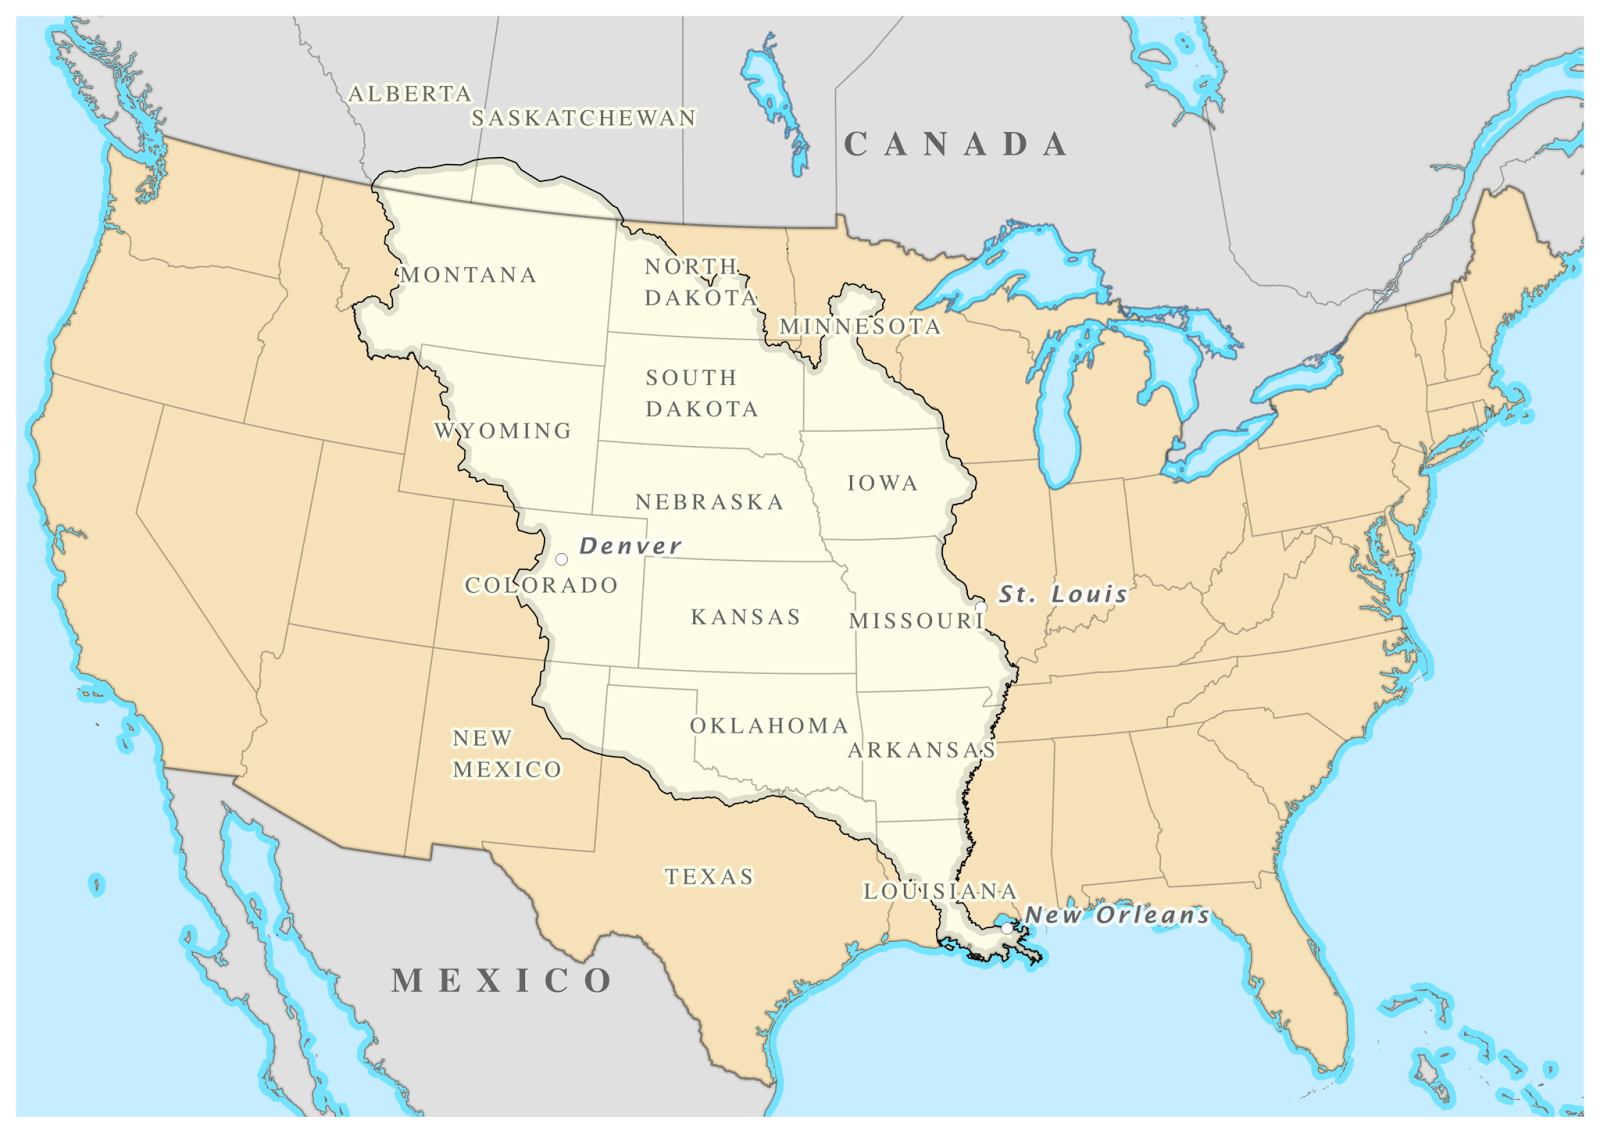 Territory of the Louisiana Purchase By William Morris [CC BY-SA 4.0 (http://creativecommons.org/licenses/by-sa/4.0)], via Wikimedia Commons